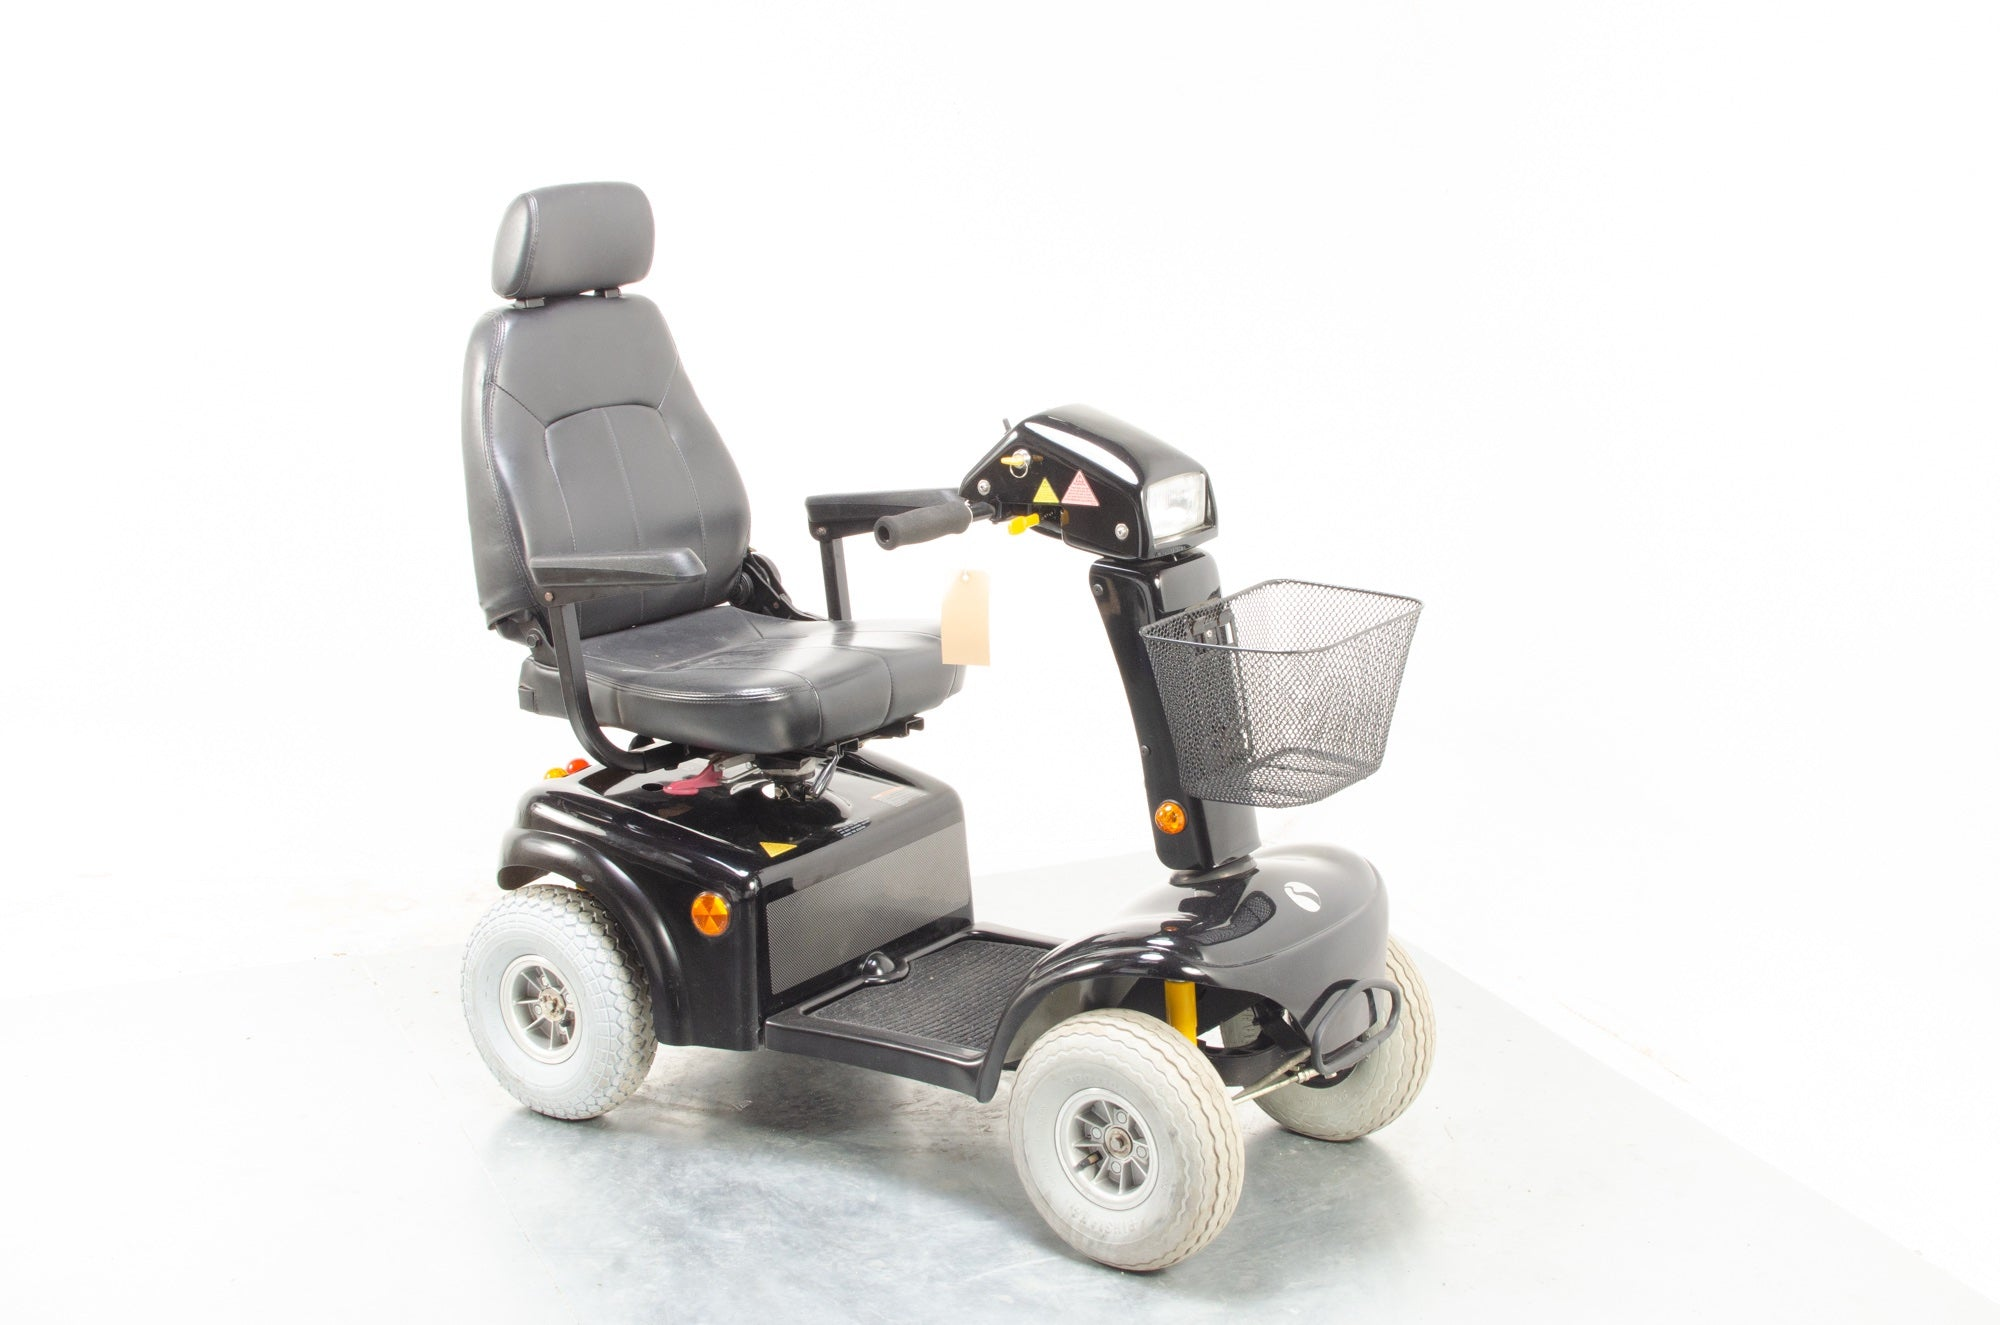 Rascal 850 Used Electric Mobility Scooter 8mph All-Terrain Pavement Suspension Pneumatic